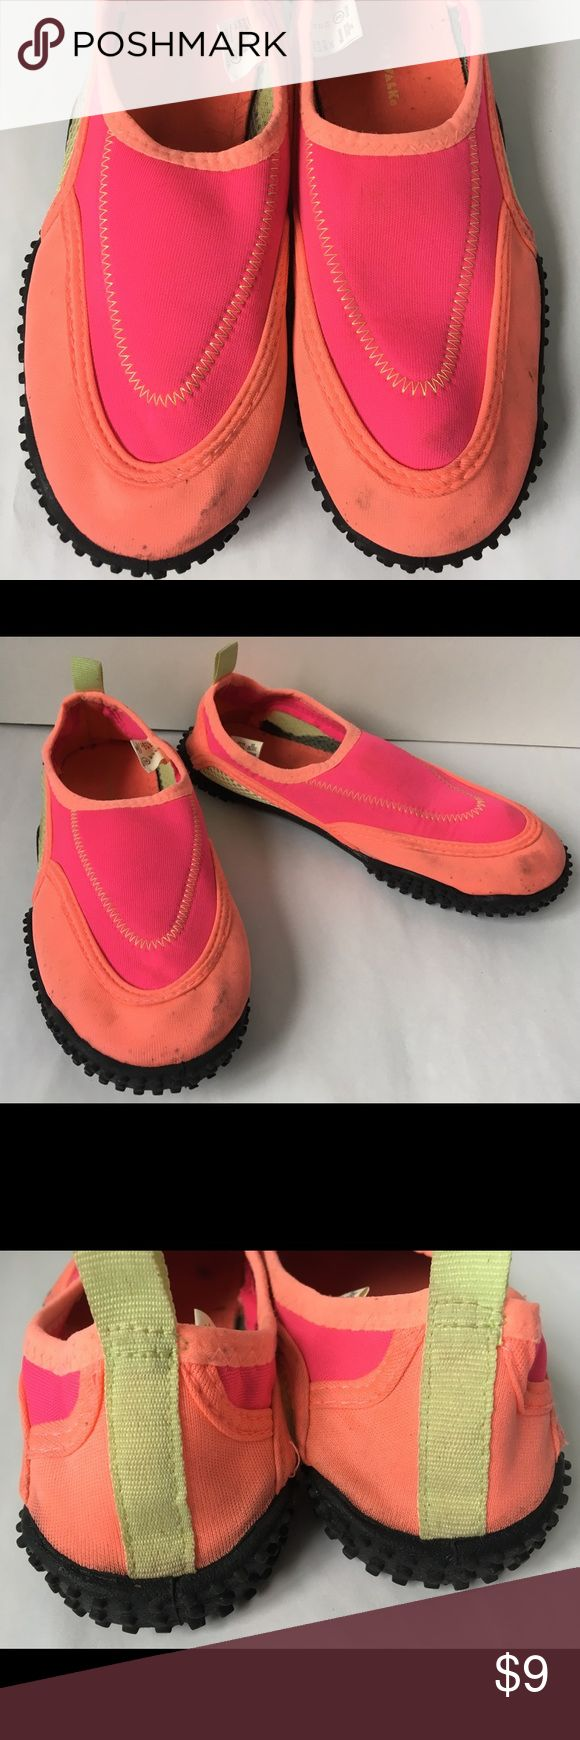 Airwalk Neon Pink Orange Girls Water Shoes These girls water shoes by Airwalk show some wear but are still very functional. Size 3.   These shoes are part of a charity sale.  They were donated by a woman who chose Neighborhood Women's Collective to benefit from its sale. Your purchase makes a difference!    Please like my store and see the entire collection of charity items.  Check back often, new items are donated weekly. Airwalk Shoes Water Shoes